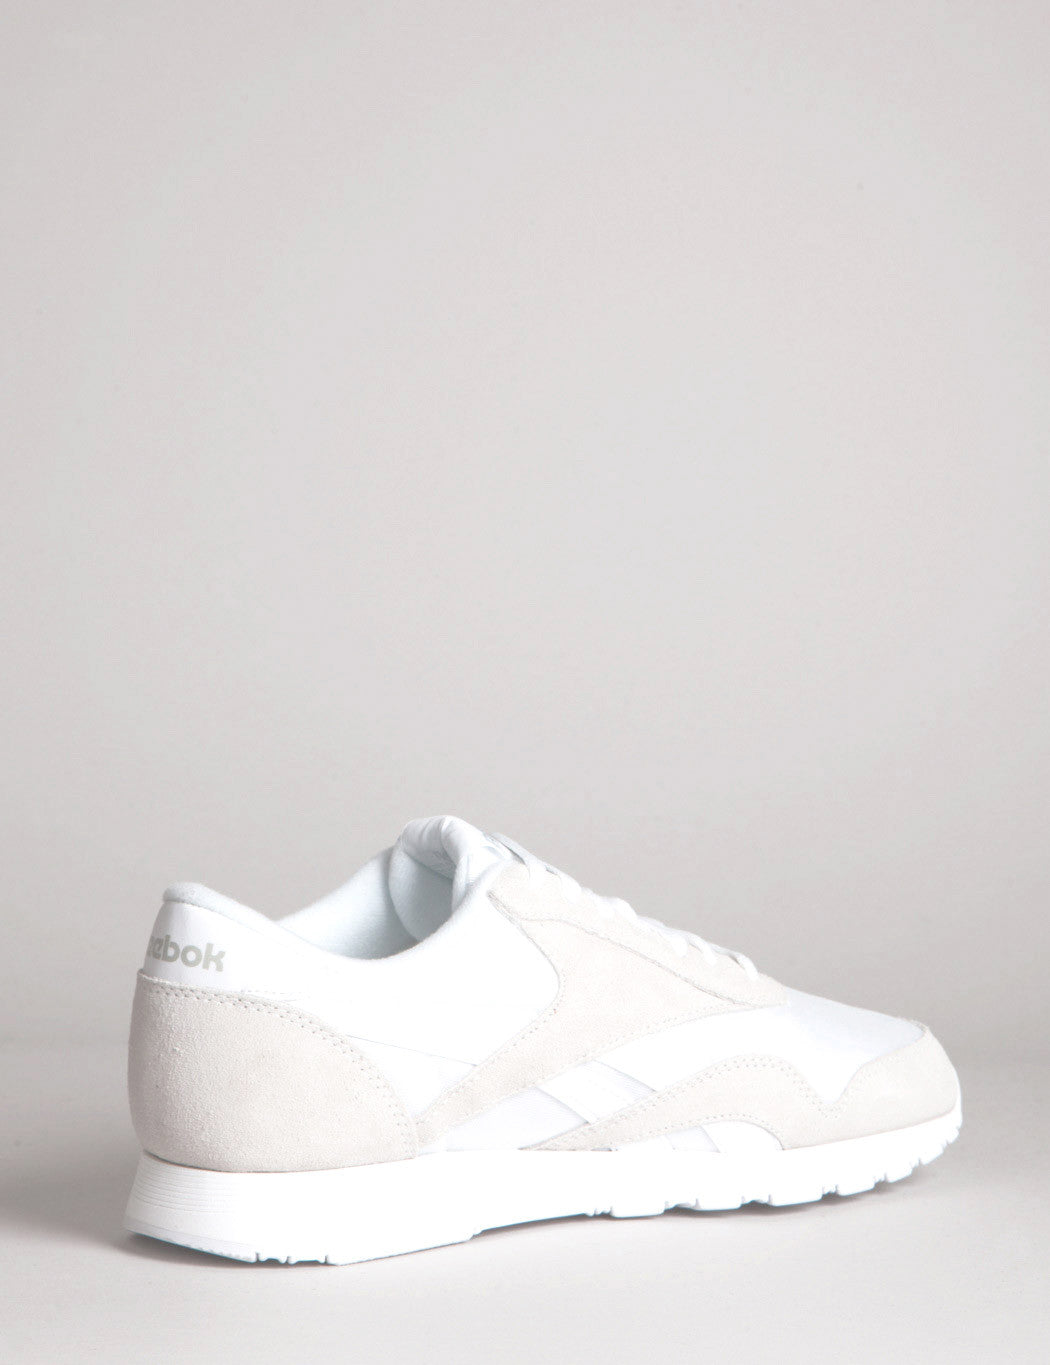 Reebok CL Nylon Trainers - White/Light Grey